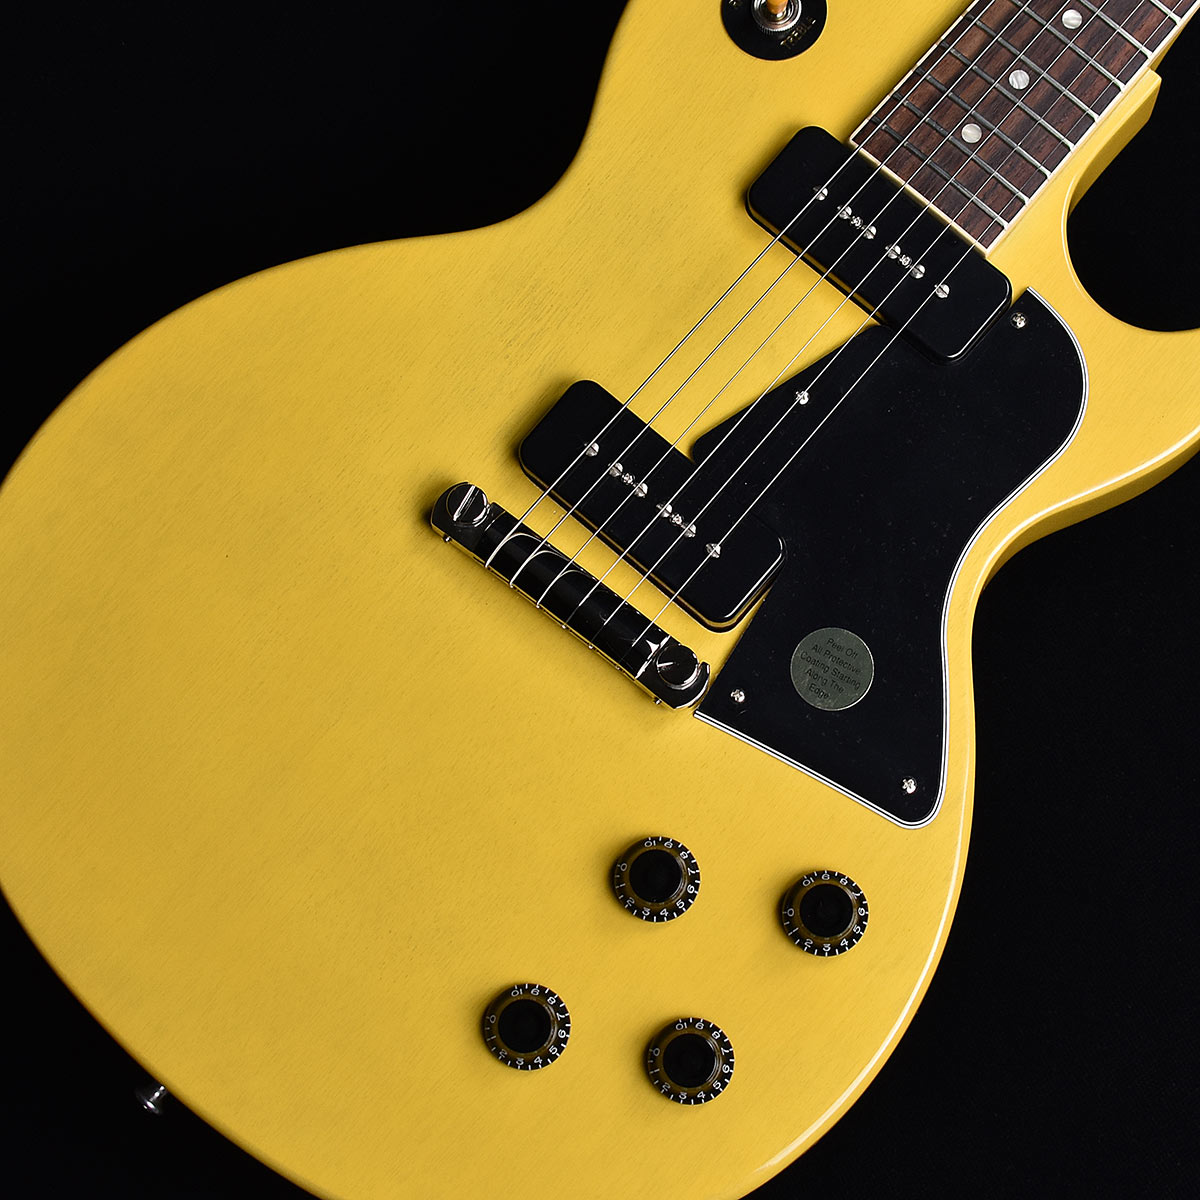 Gibson Les Paul Special 2019 TV Yellow S/N:127590401 【ギブソン レスポールスペシャル】【未展示品】